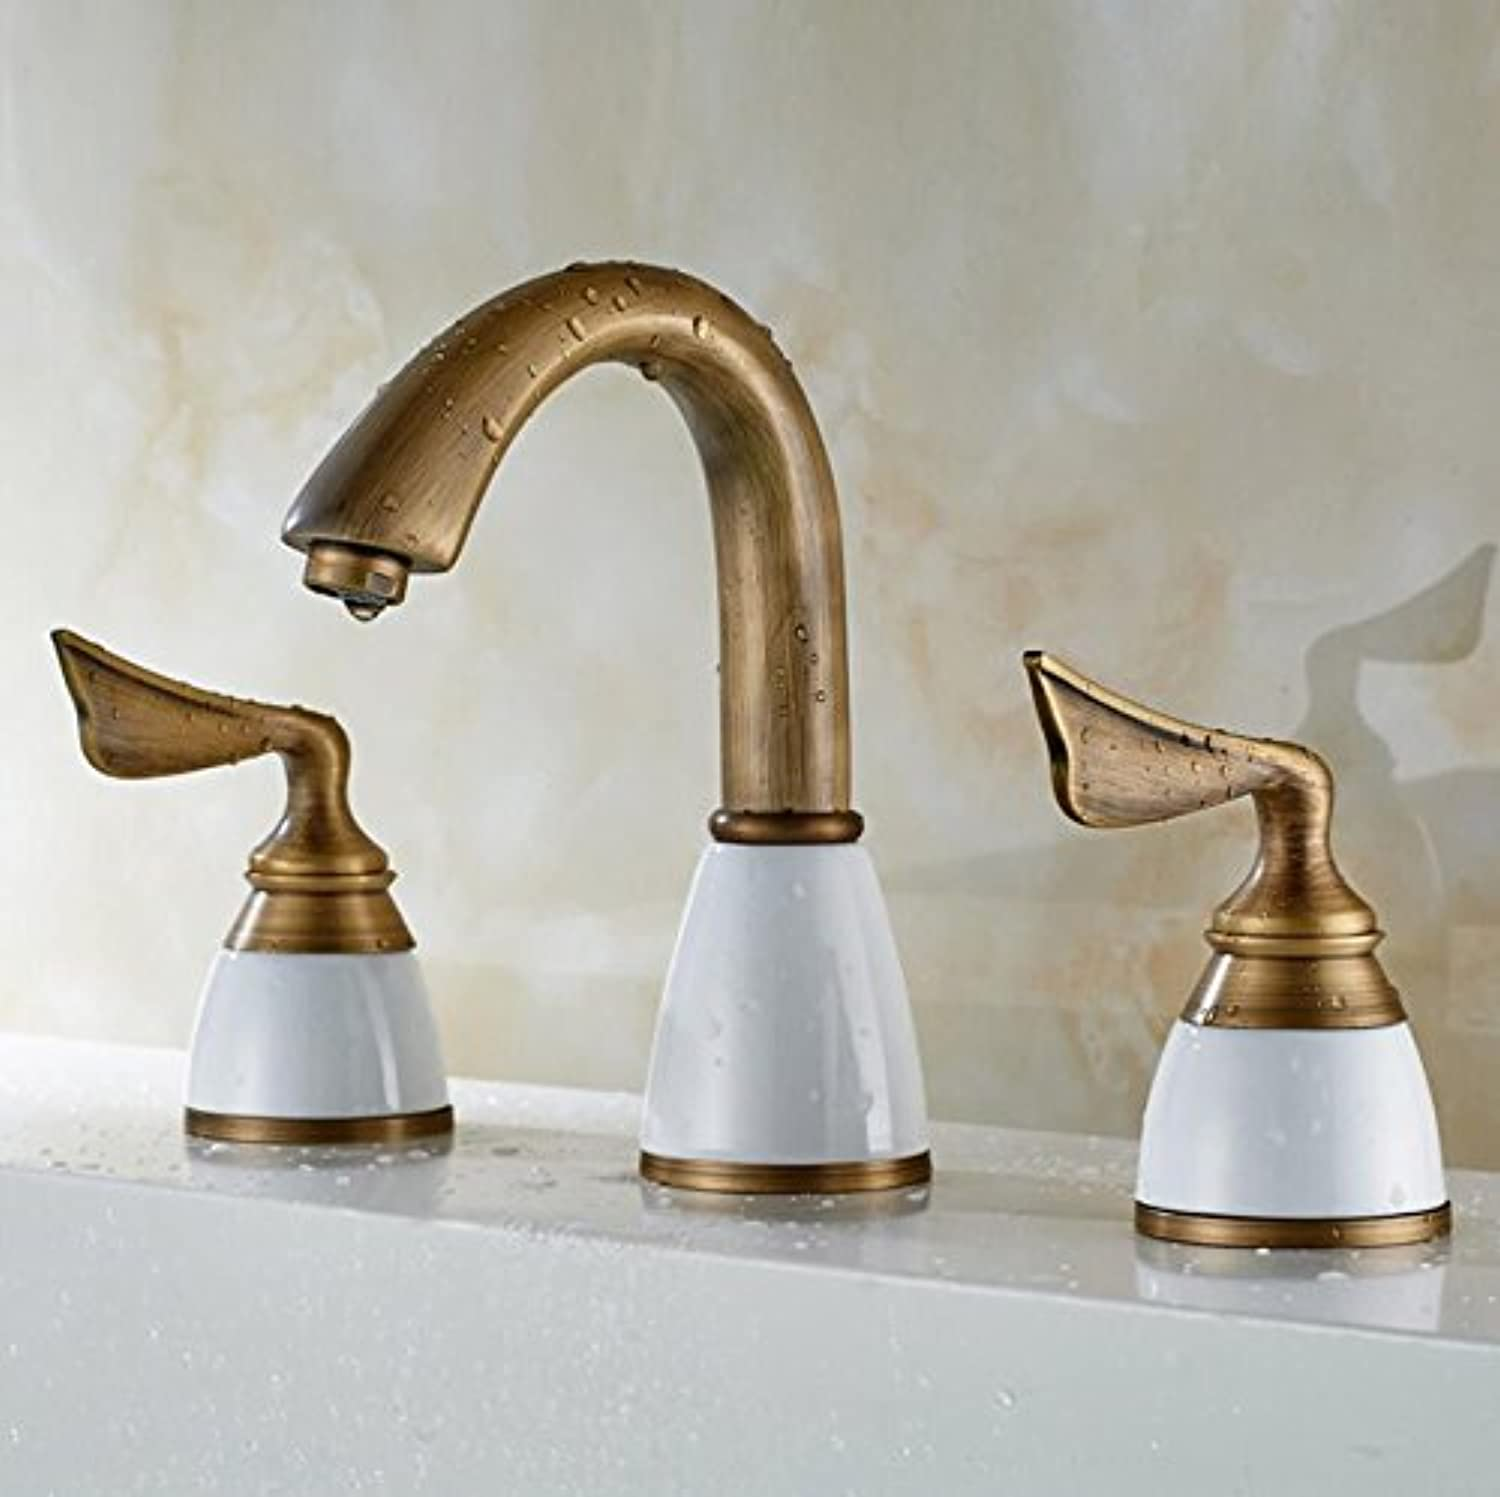 AQMMi Basin Sink Mixer Tap for Lavatory Copper Antique Hot and Cold Water 3 Holes Brushed Bathroom Vanity Sink Faucet